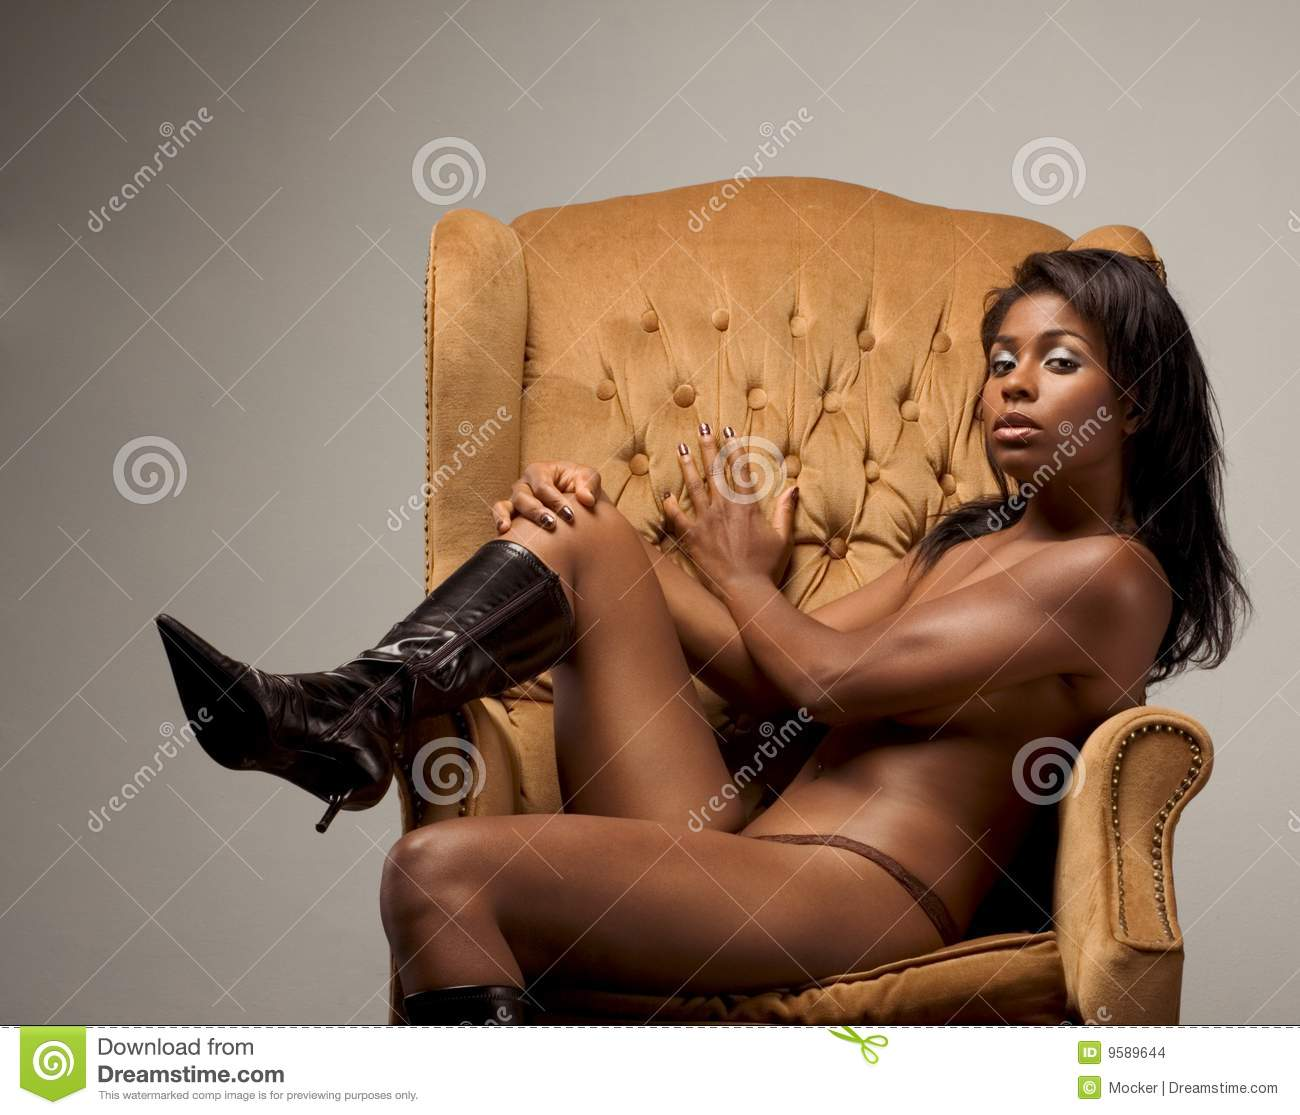 Naked women sitting on leather chairs